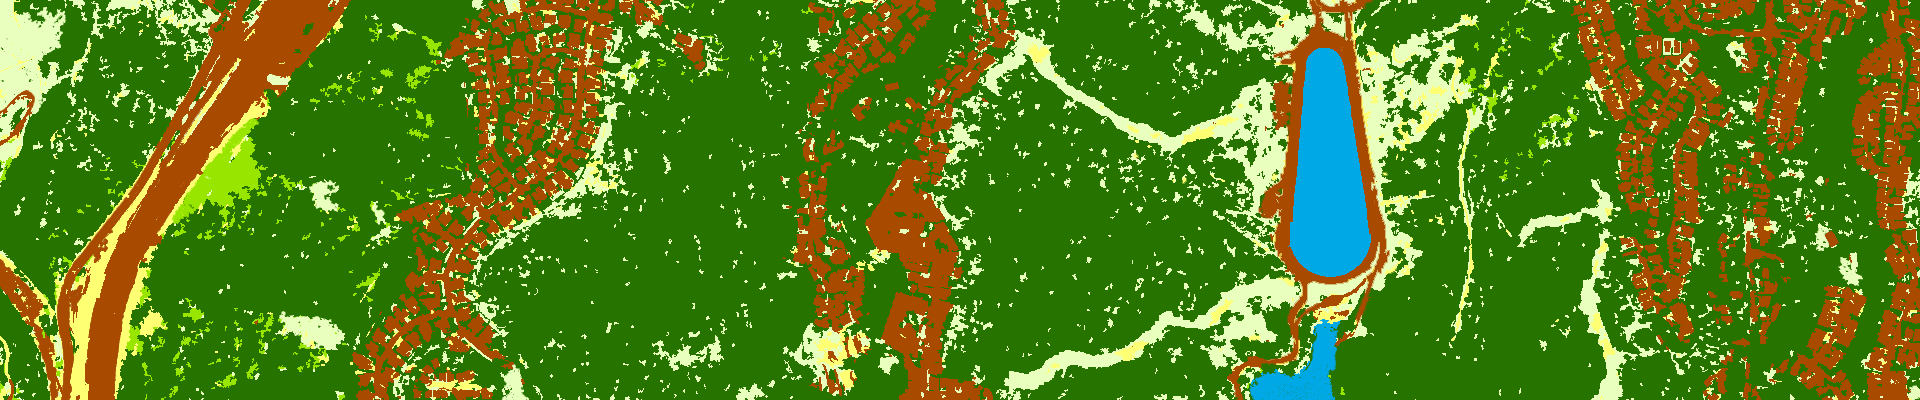 Los Angeles County, California (2012), SpatialCover Land Cover